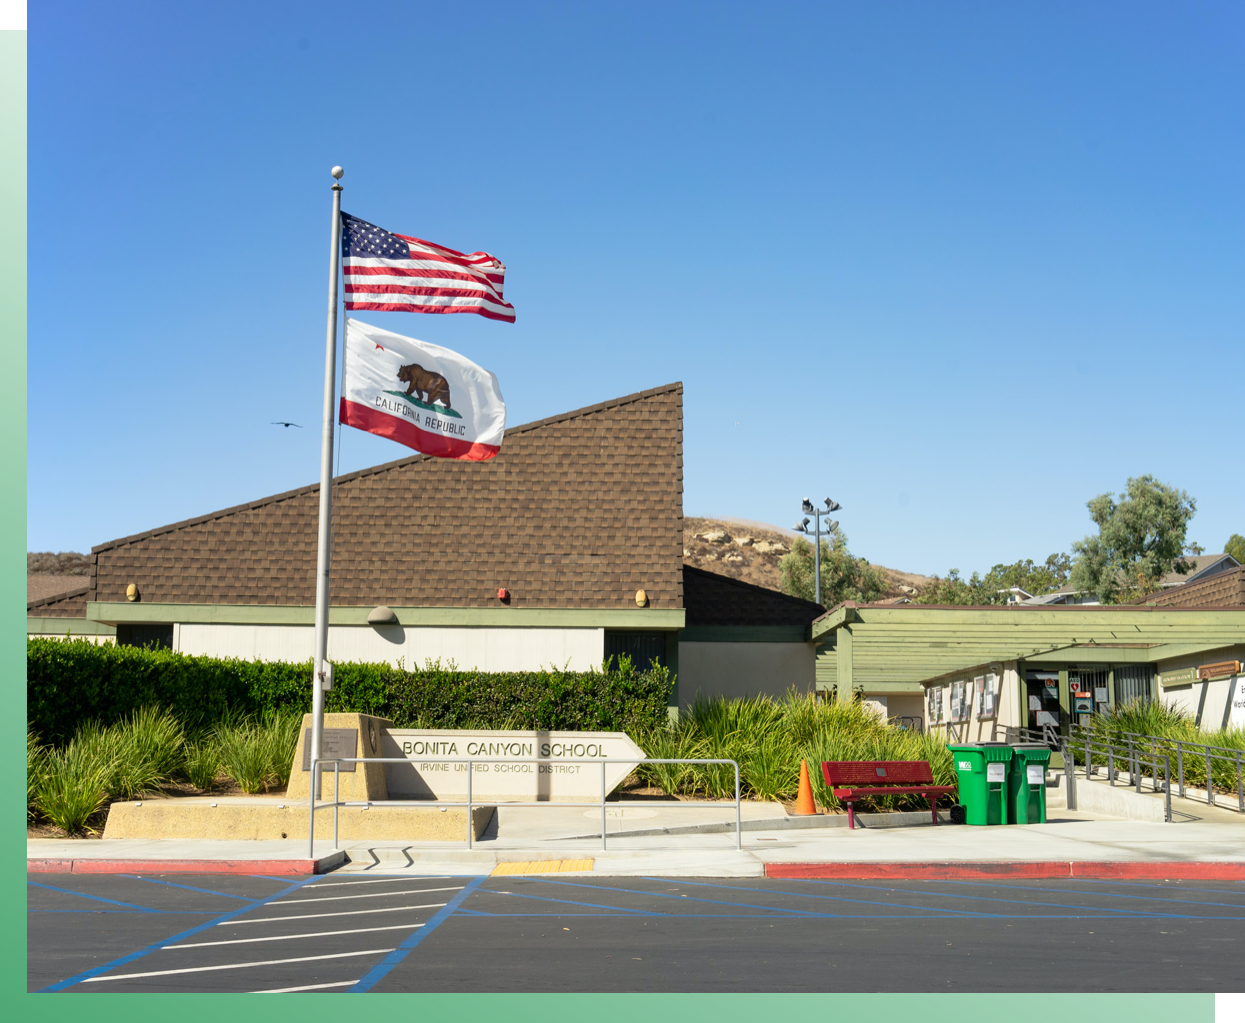 Photograph of Bonita Canyon School